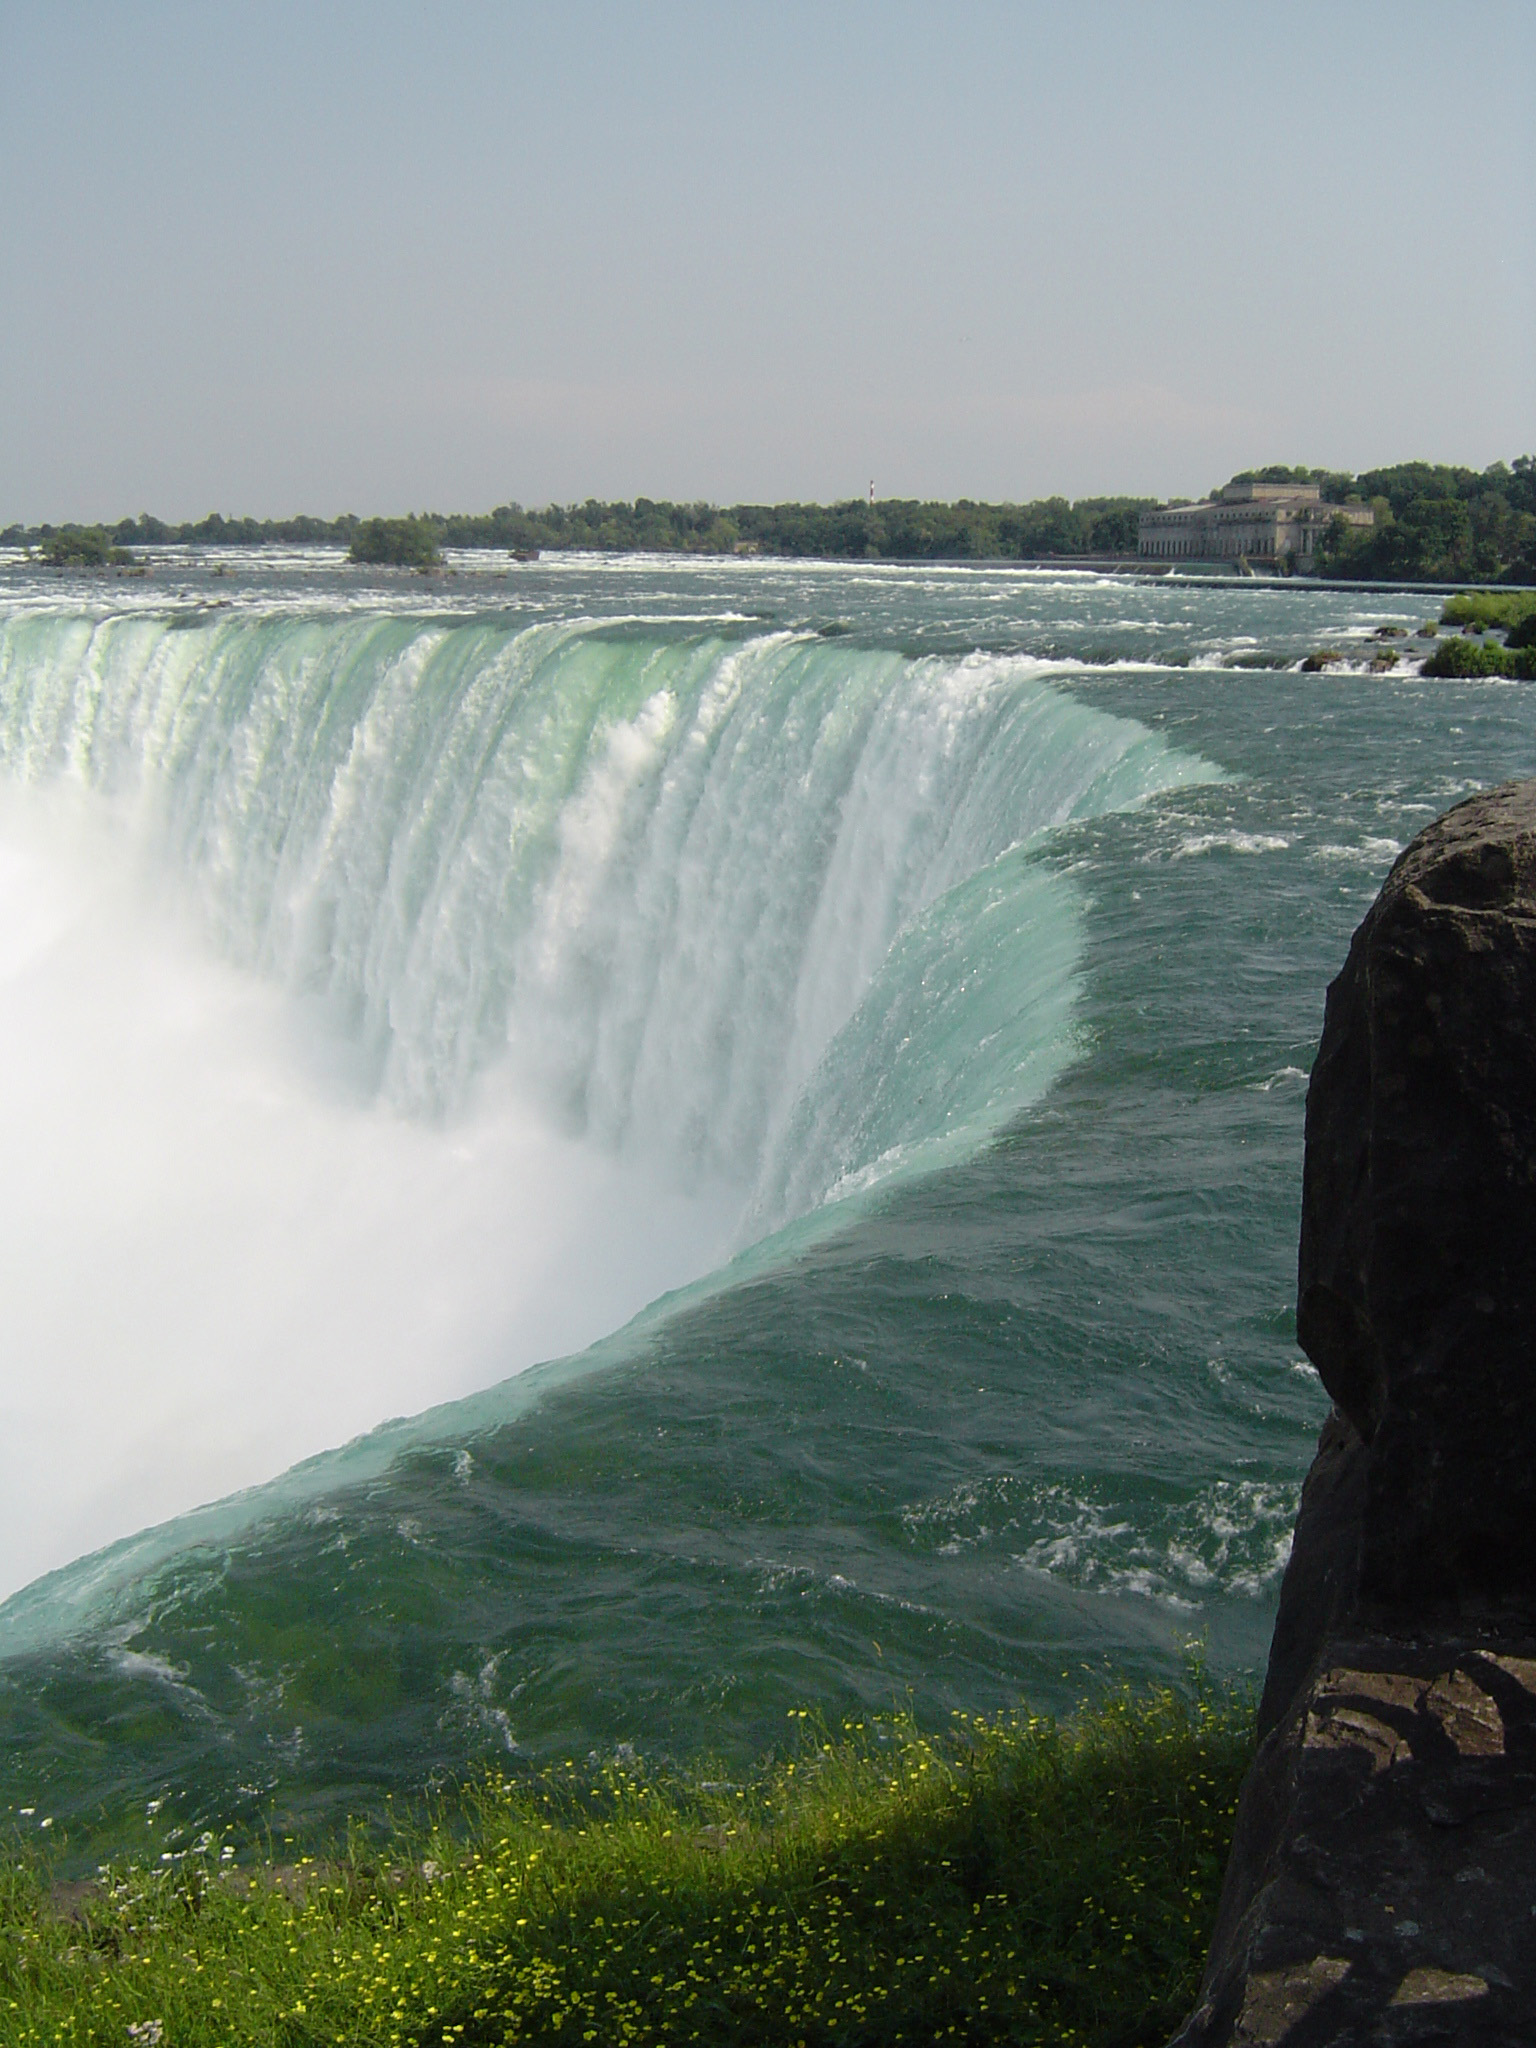 Scenic view of the Niagara Horseshoe Falls on the border between Canada and the USA, high angle showing the river cascading over the clifff and rising spray